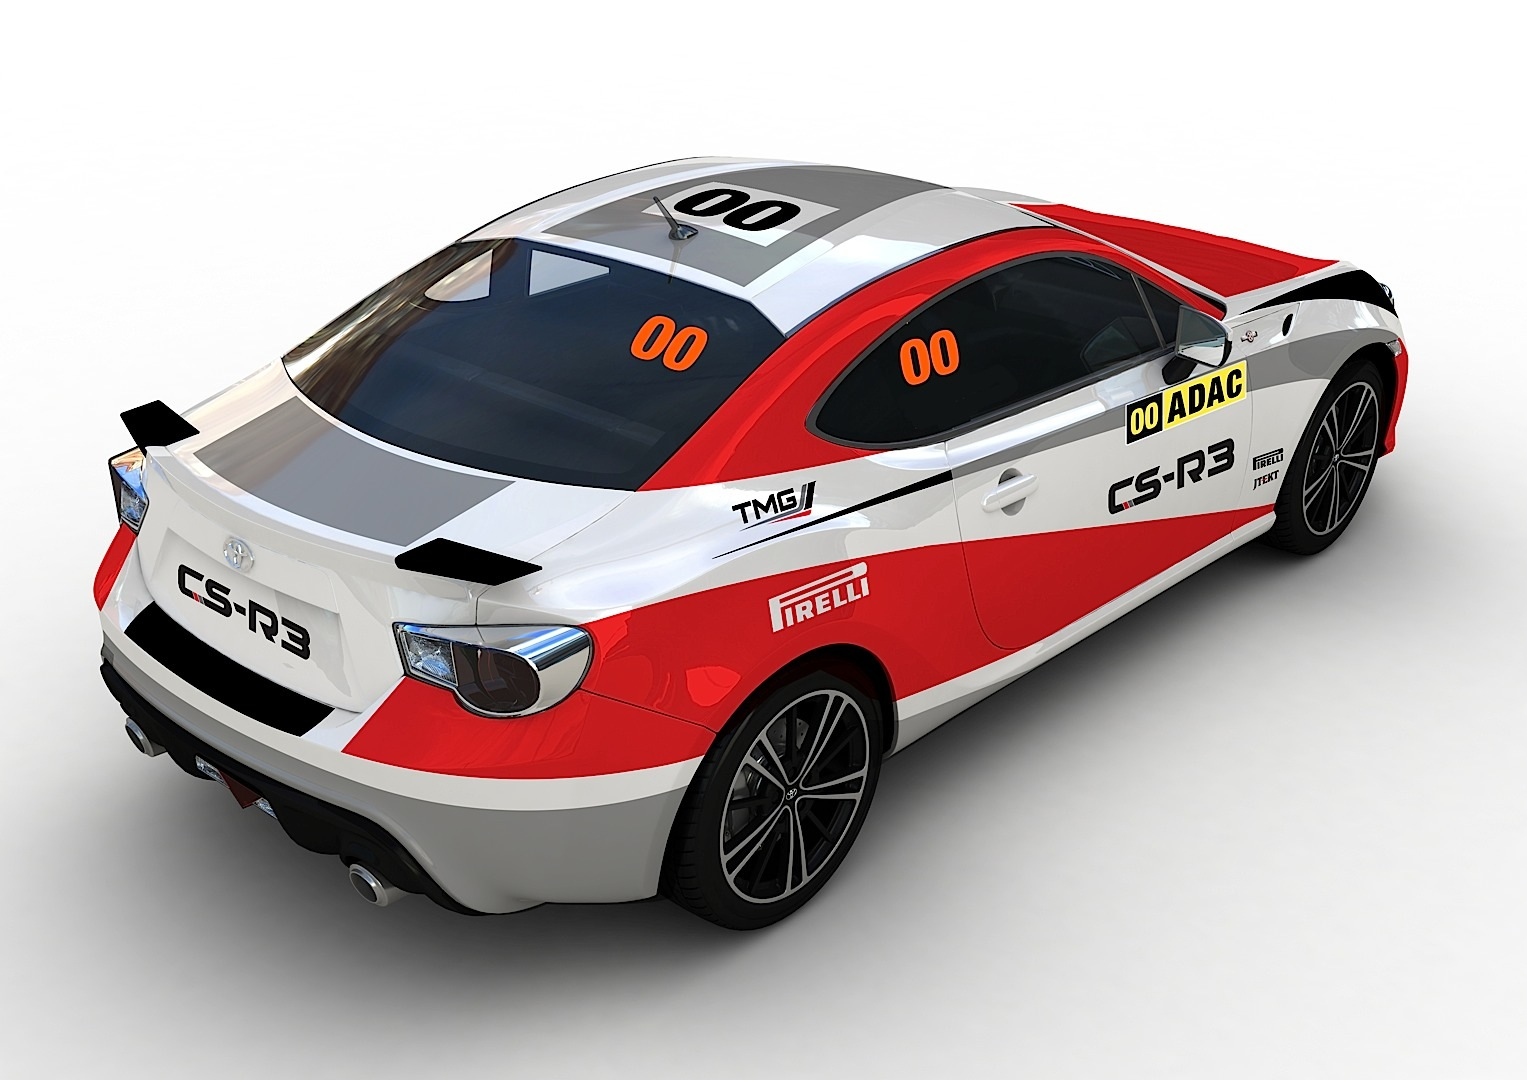 New Toyota GT 86 Rally Car Making WRC Debut Next Month - autoevolution